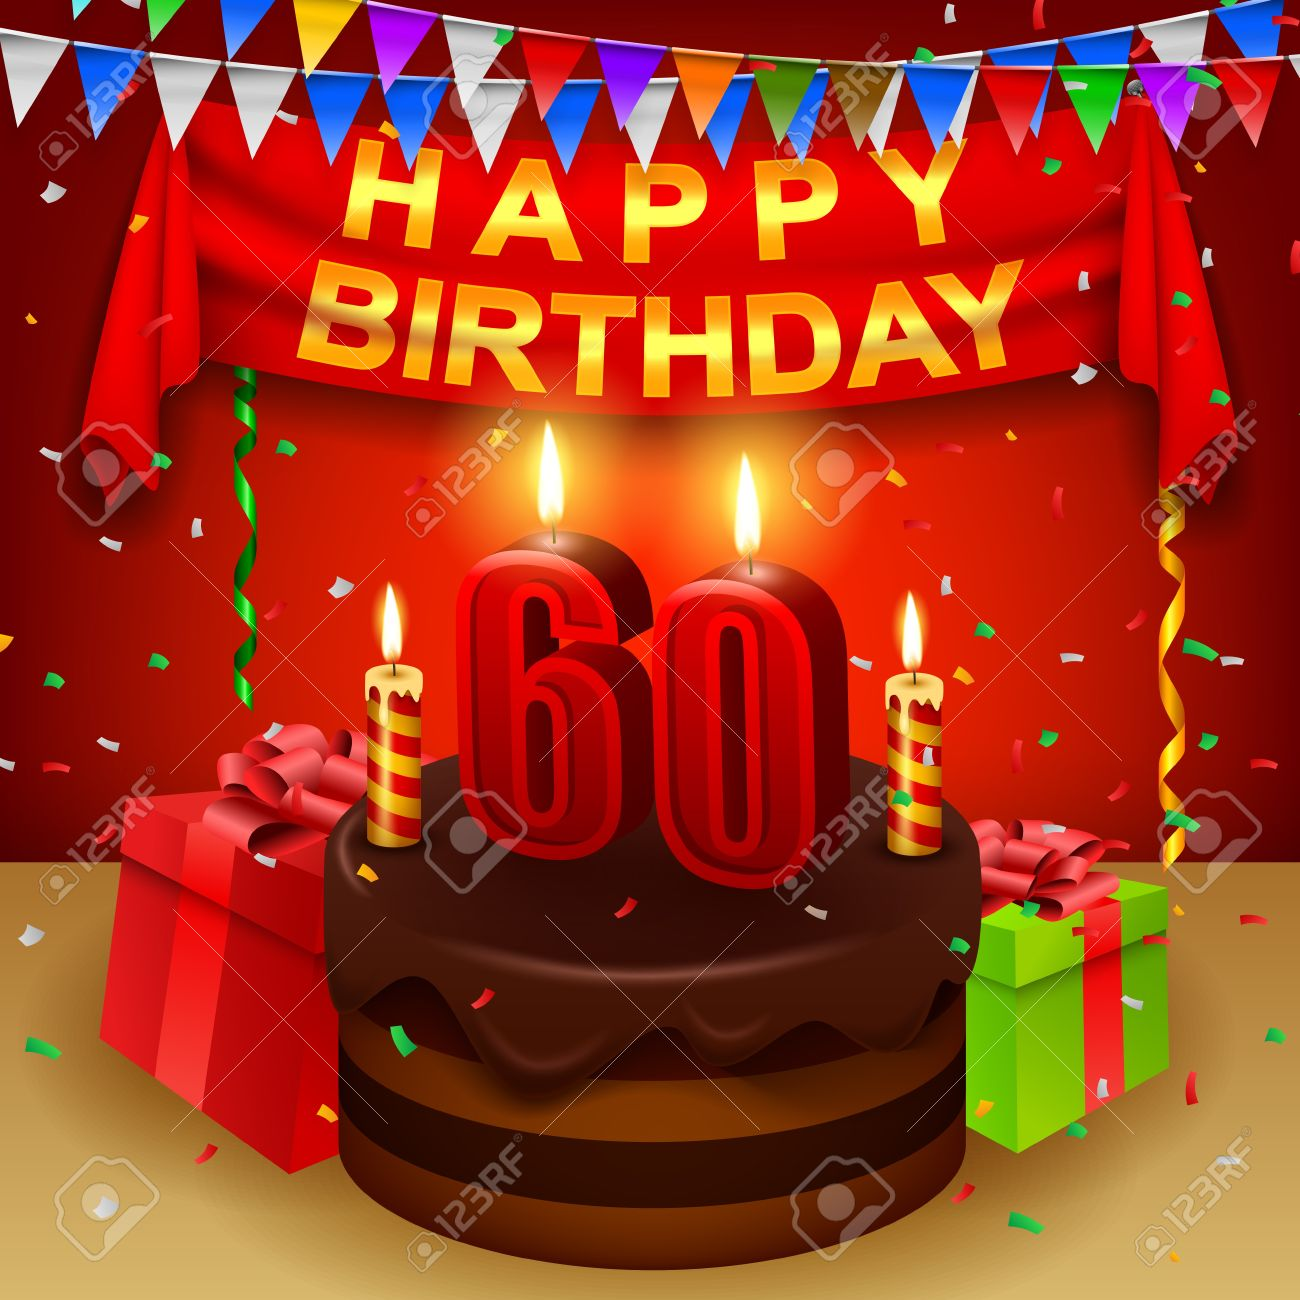 Happy 60th Birthday With Chocolate Cream Cake And Triangular Flag Stock Vector